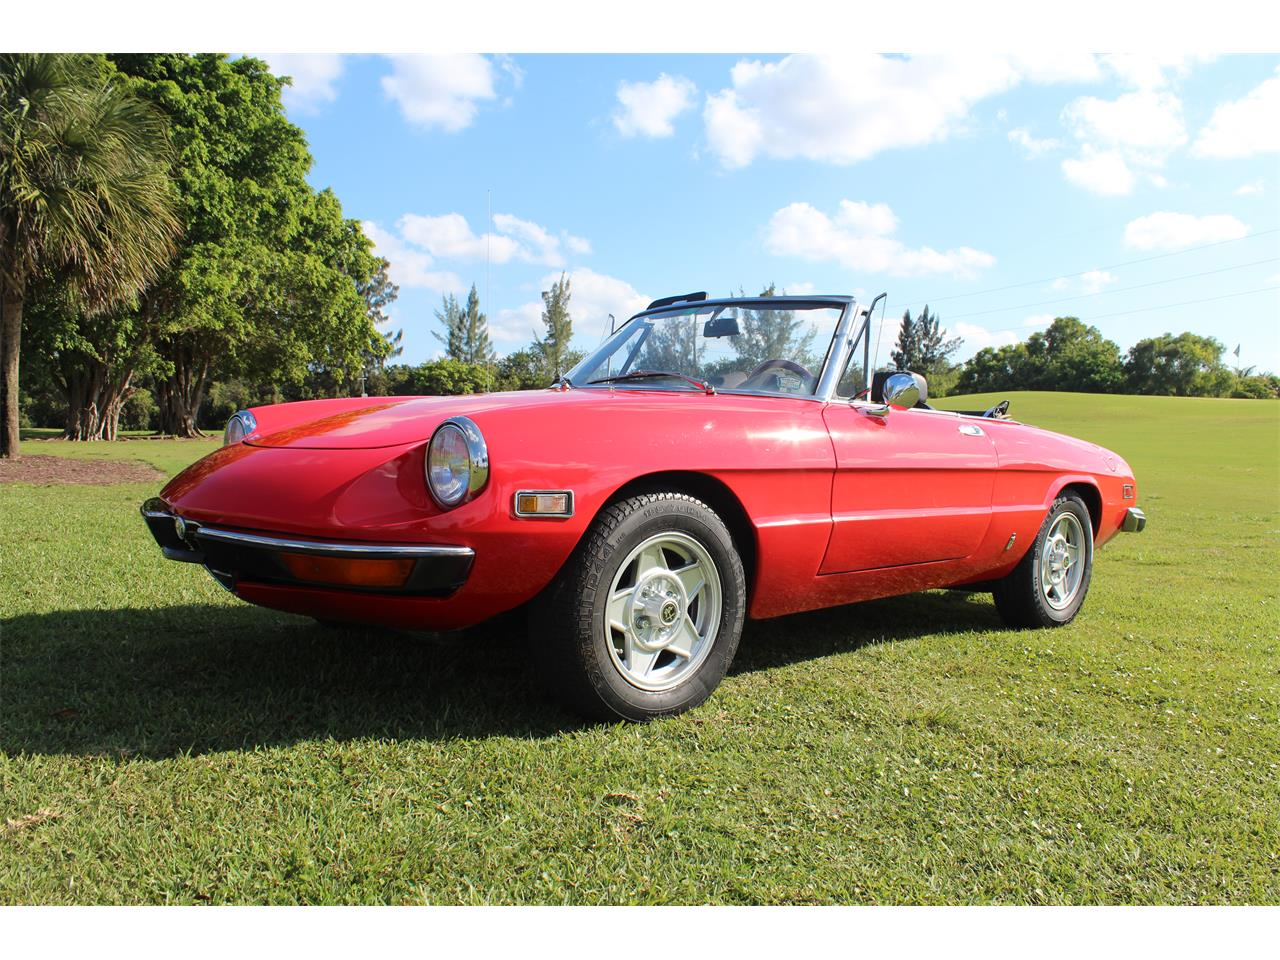 Large Picture of Classic '71 Alfa Romeo Spider located in Florida Offered by a Private Seller - MA2U